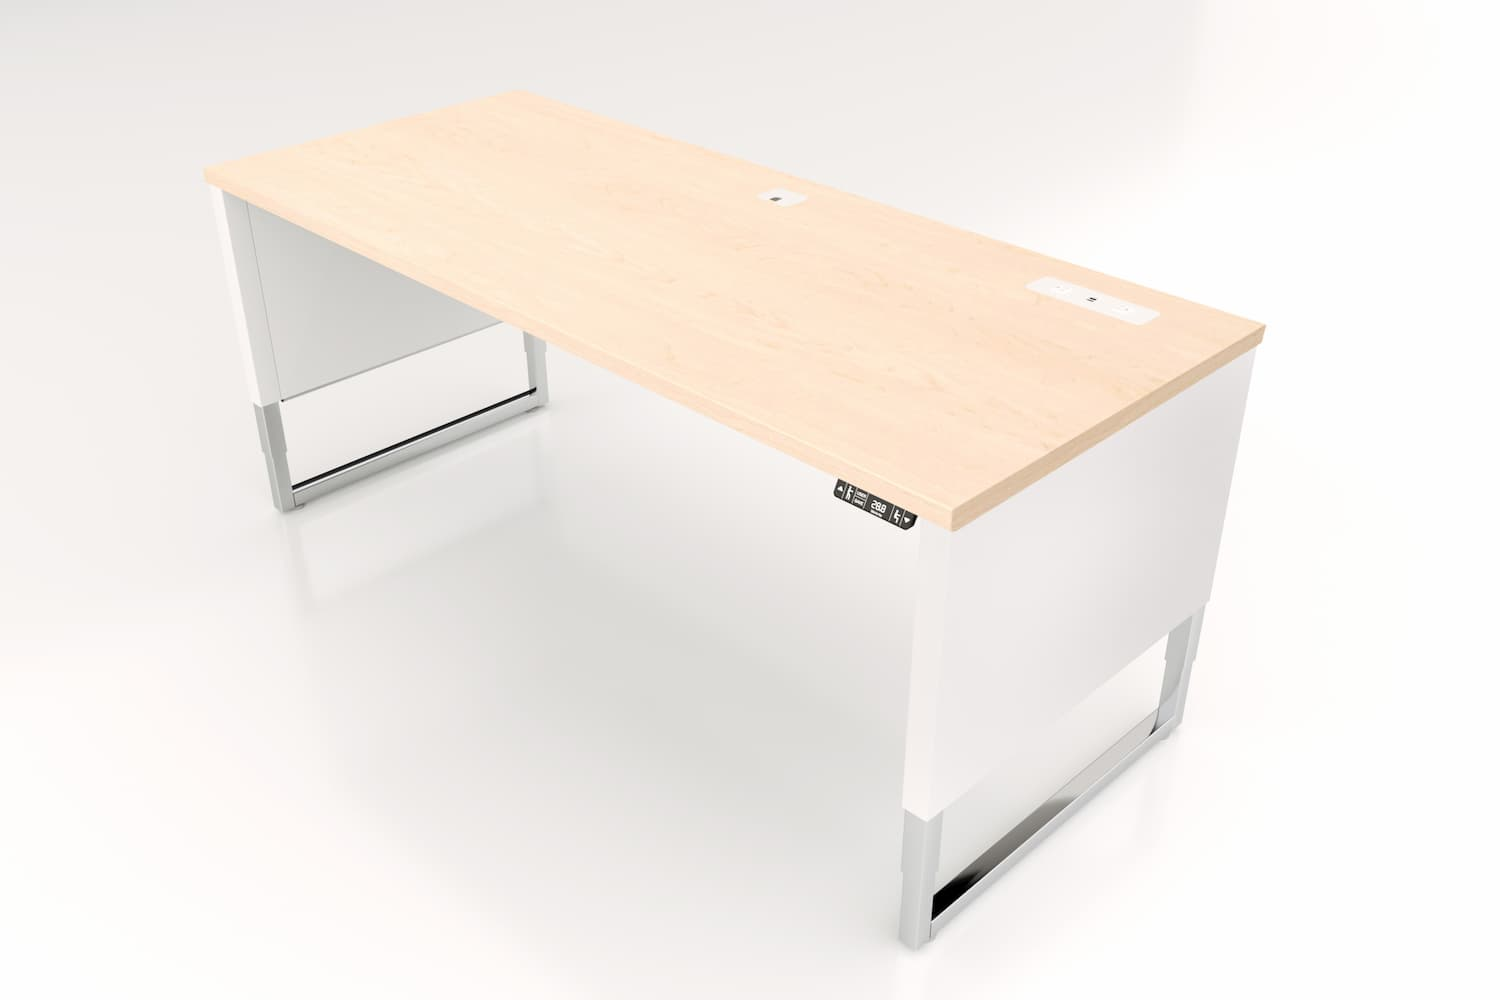 Advent-Desk-ADV-7230-WH-Custom-Top-8